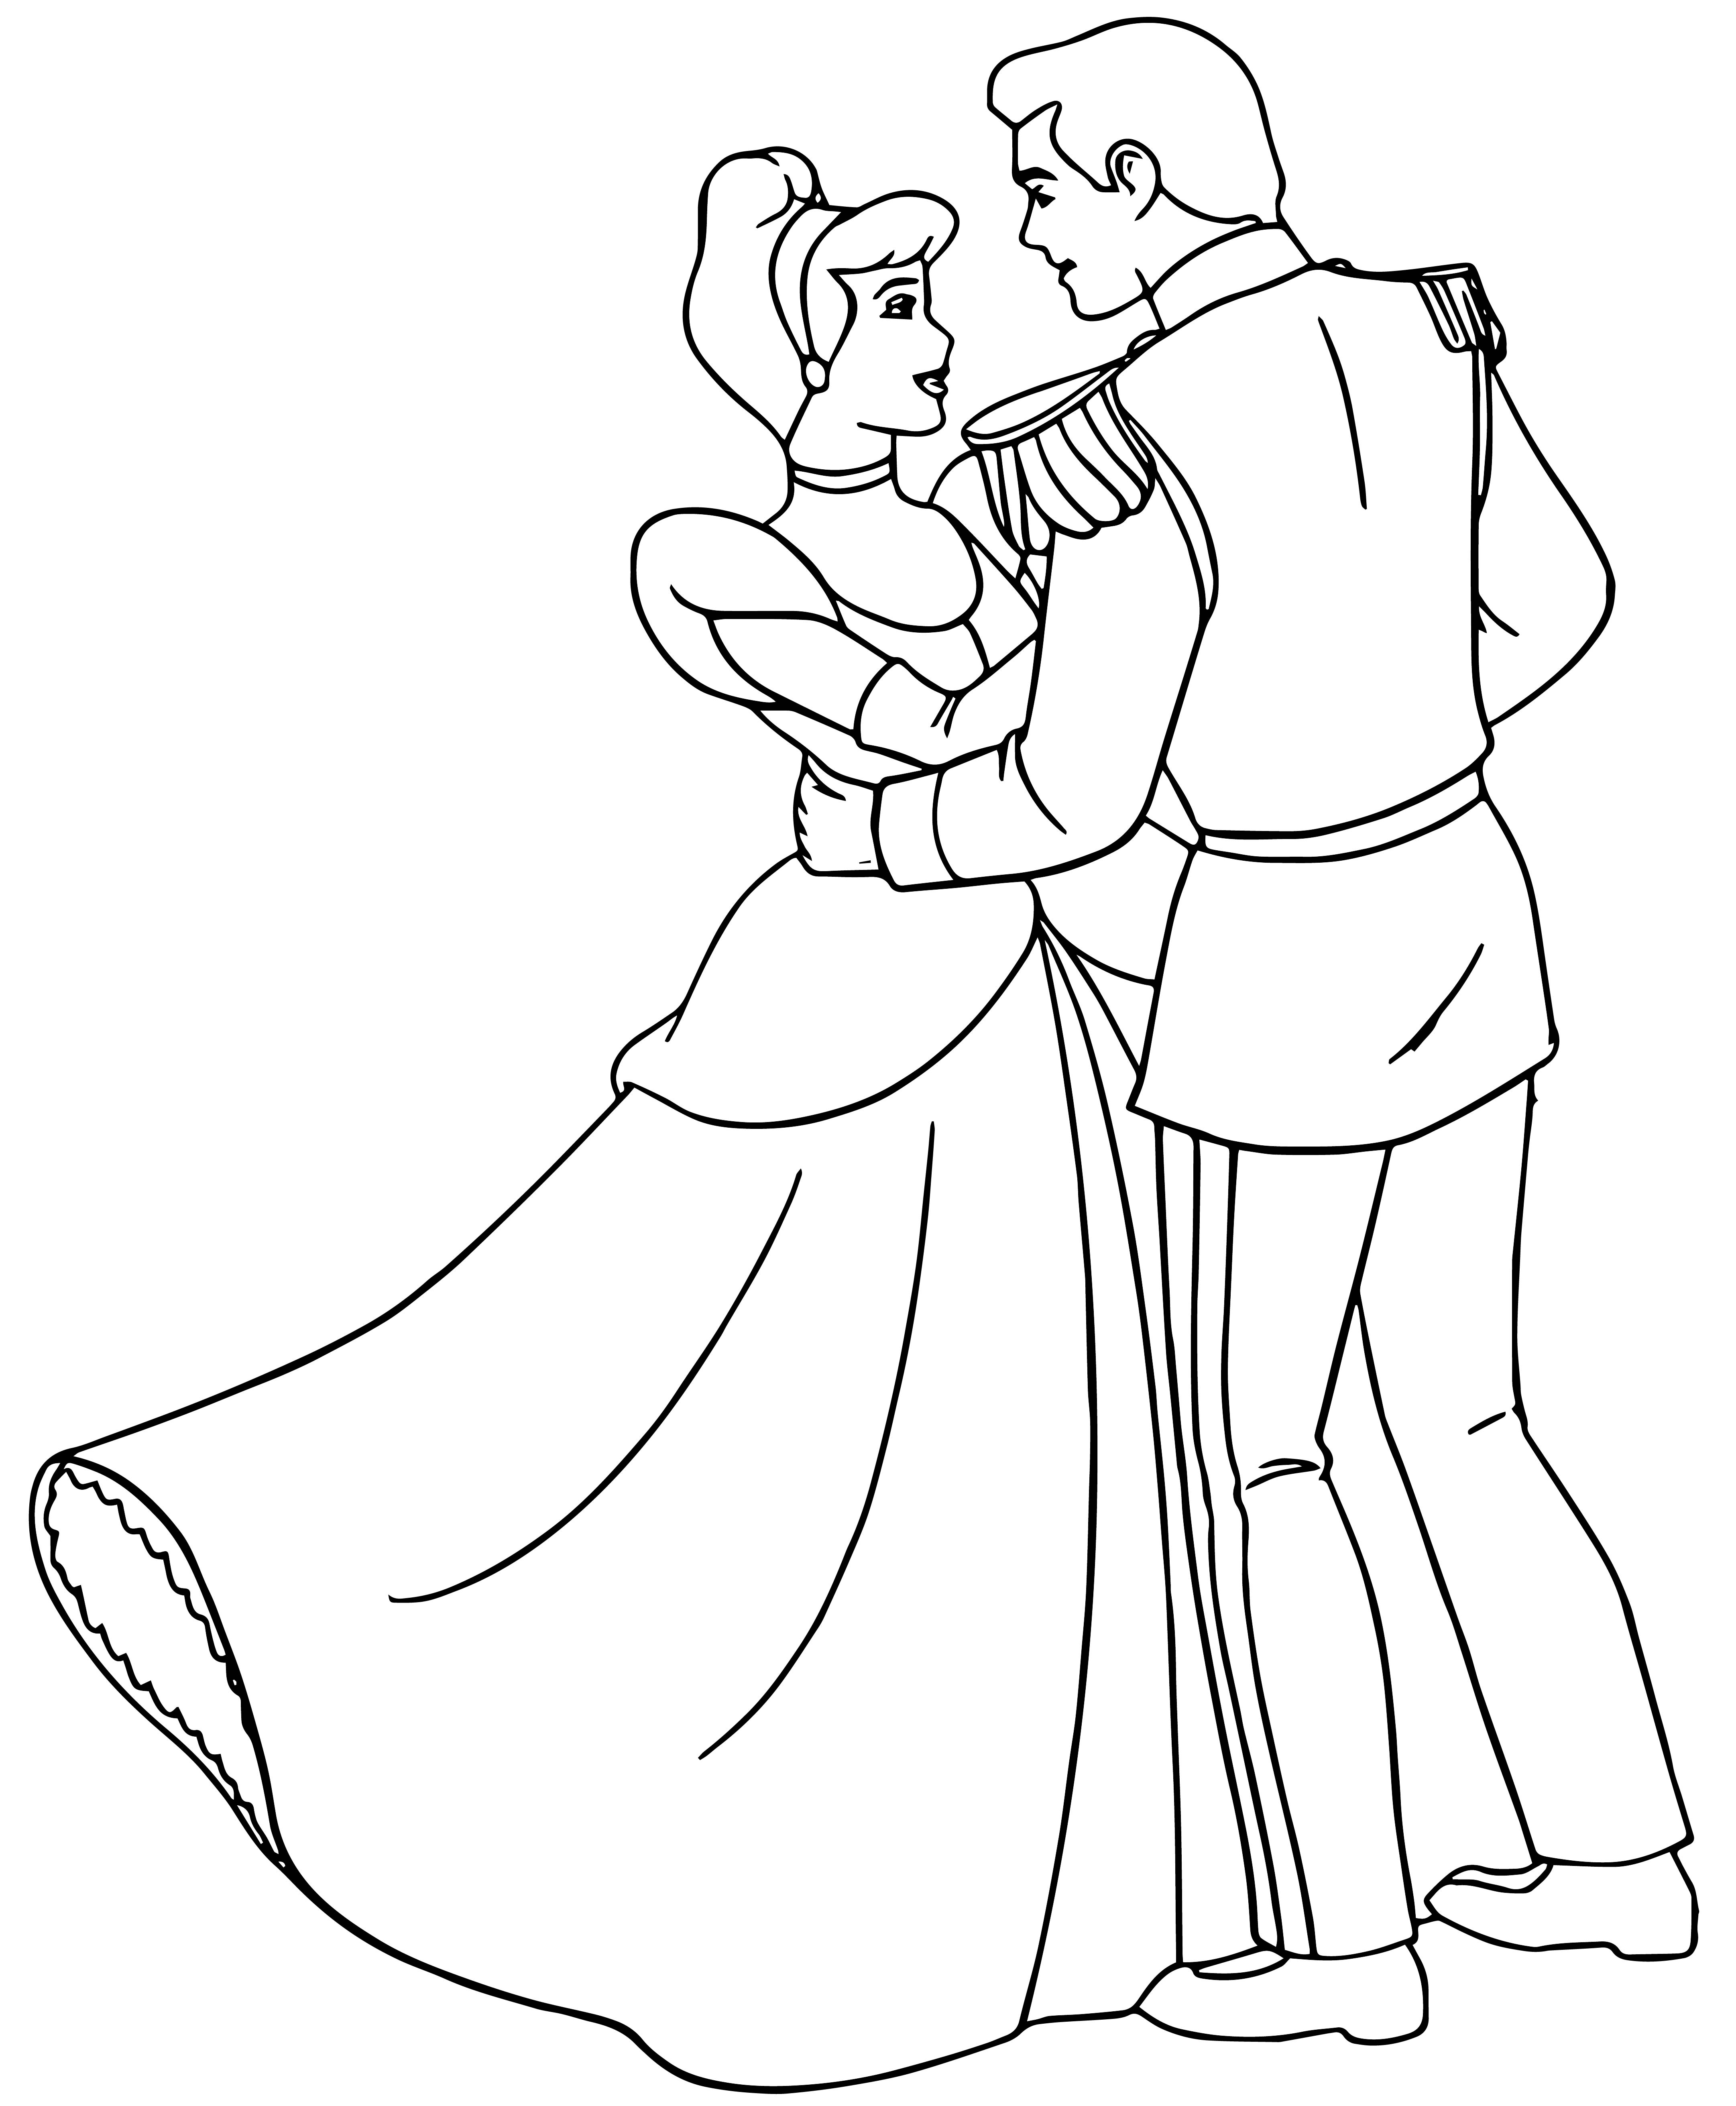 Cinderella And Prince Charming Dancing Coloring Pages ...